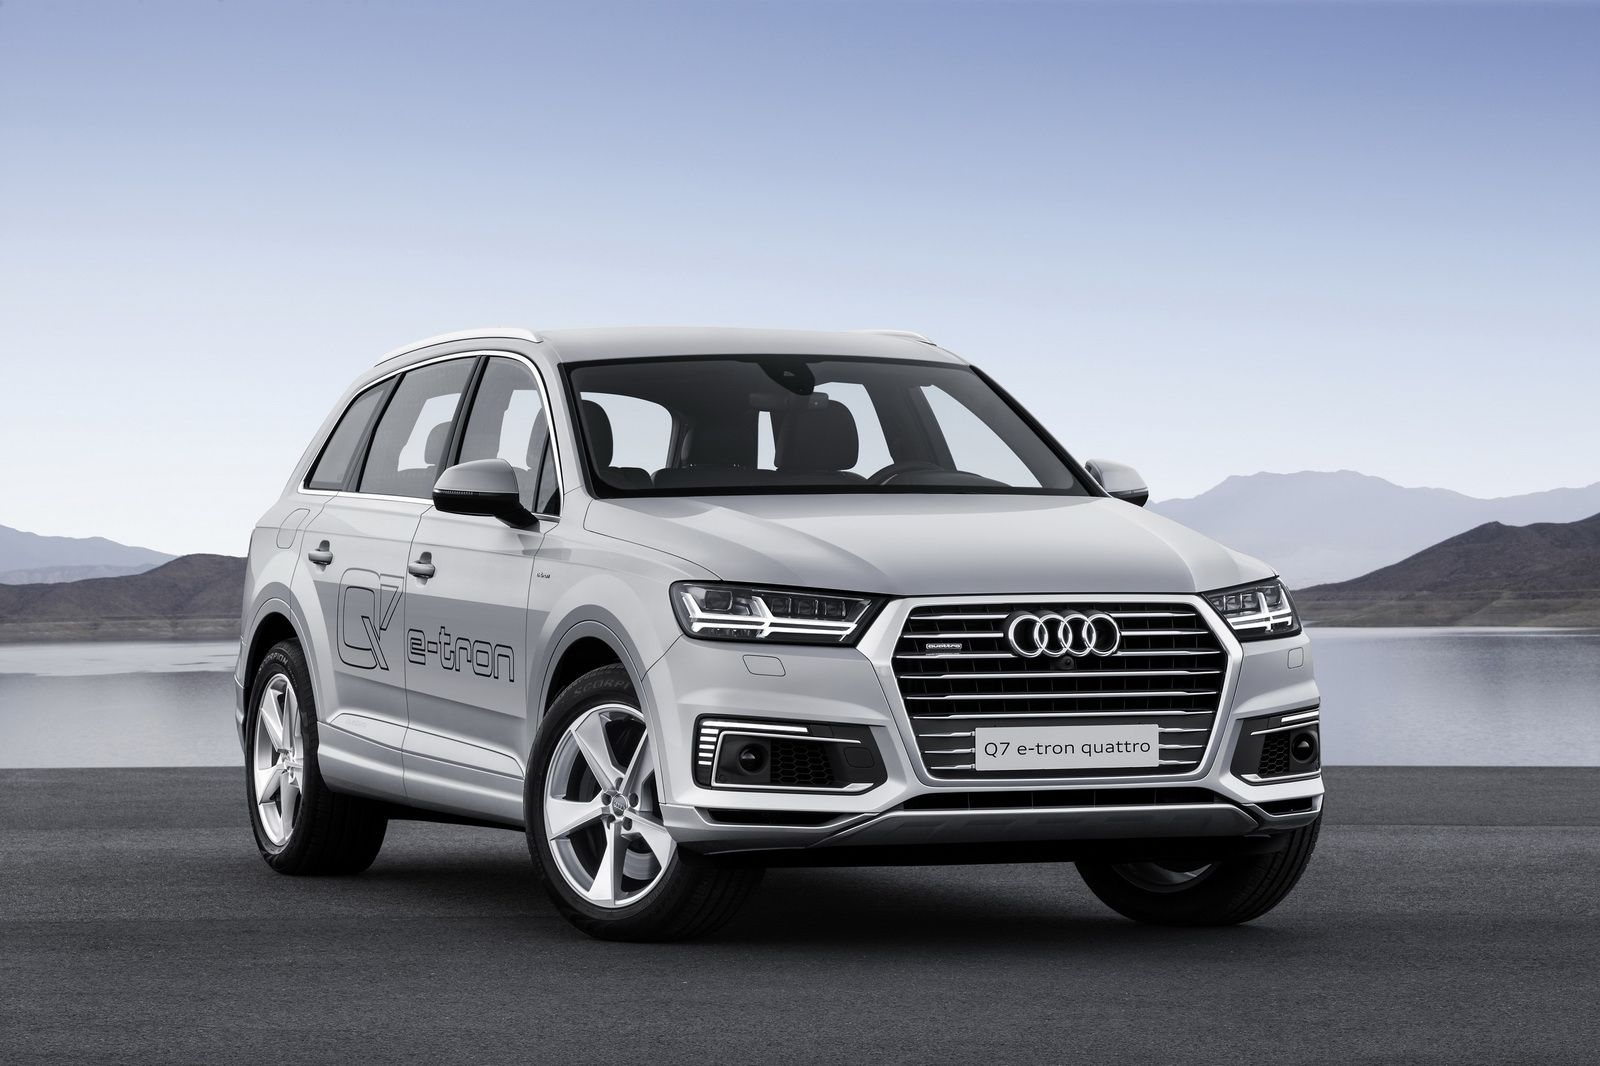 362hp Audi Q7 E Tron 2 0 Tfsi Quattro Phev Is For Asian Markets